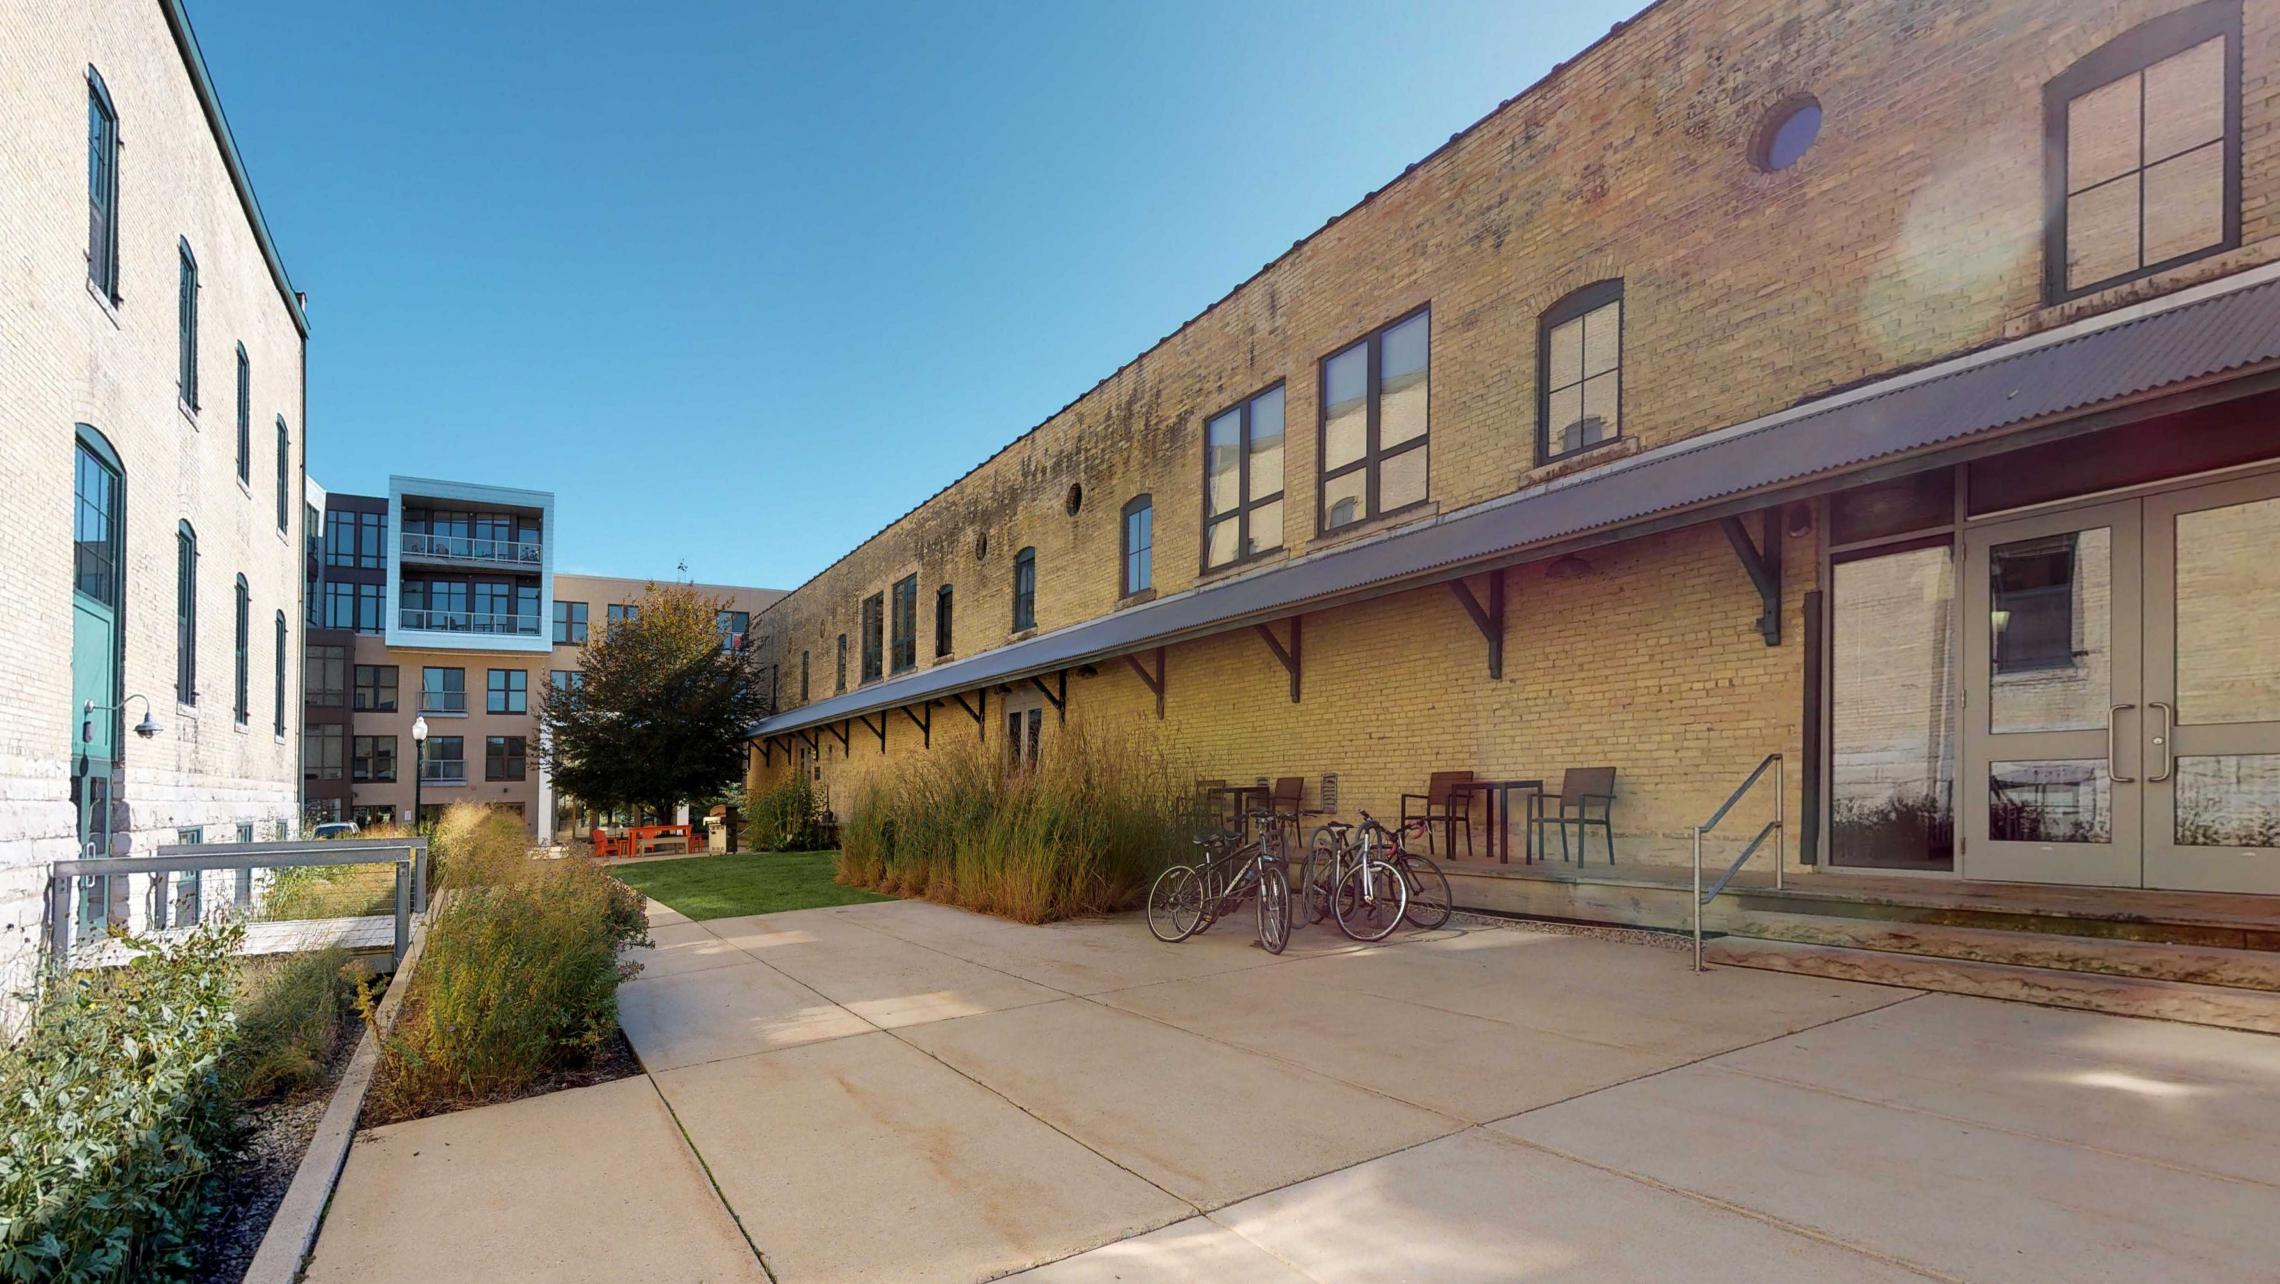 Tobacco-Lofts-Courtyard-Historic-Apartments-Design-Brick-Downtown-Madison-Yards-Boccie-Grill-Bike